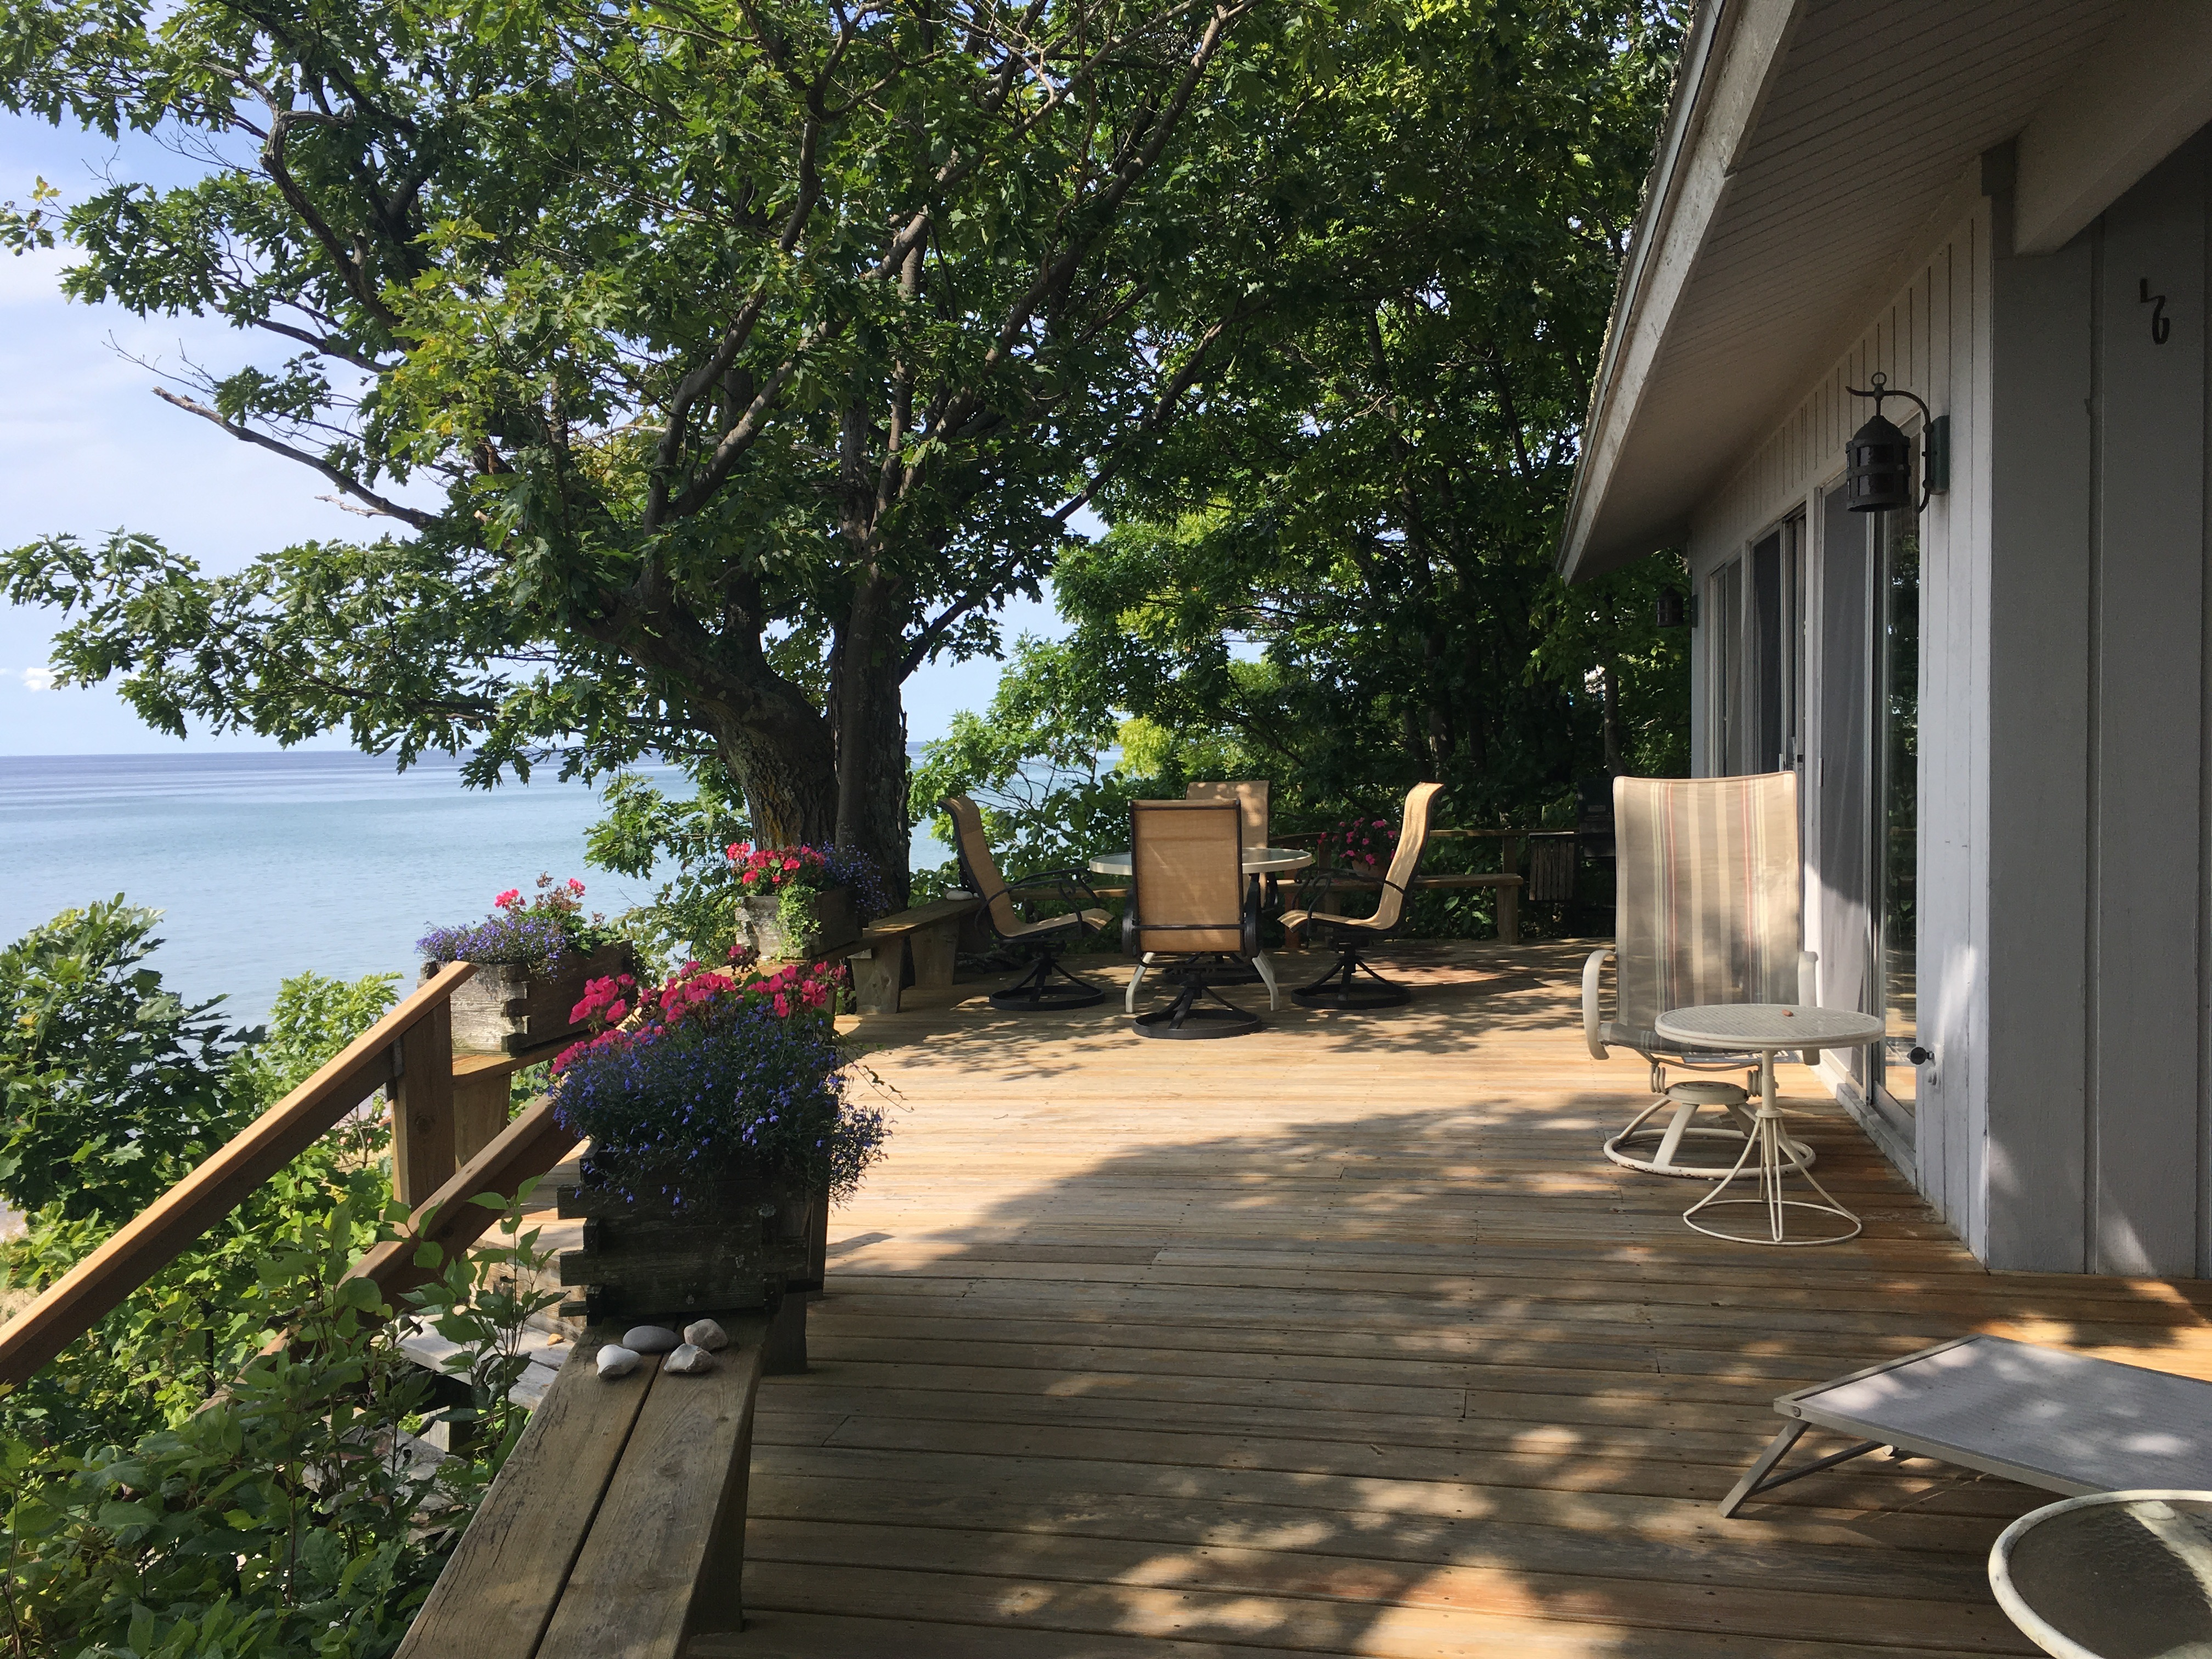 our outside rent michigan vacation beach one oct south view lake cottages terri rental beautiful rentals the of for